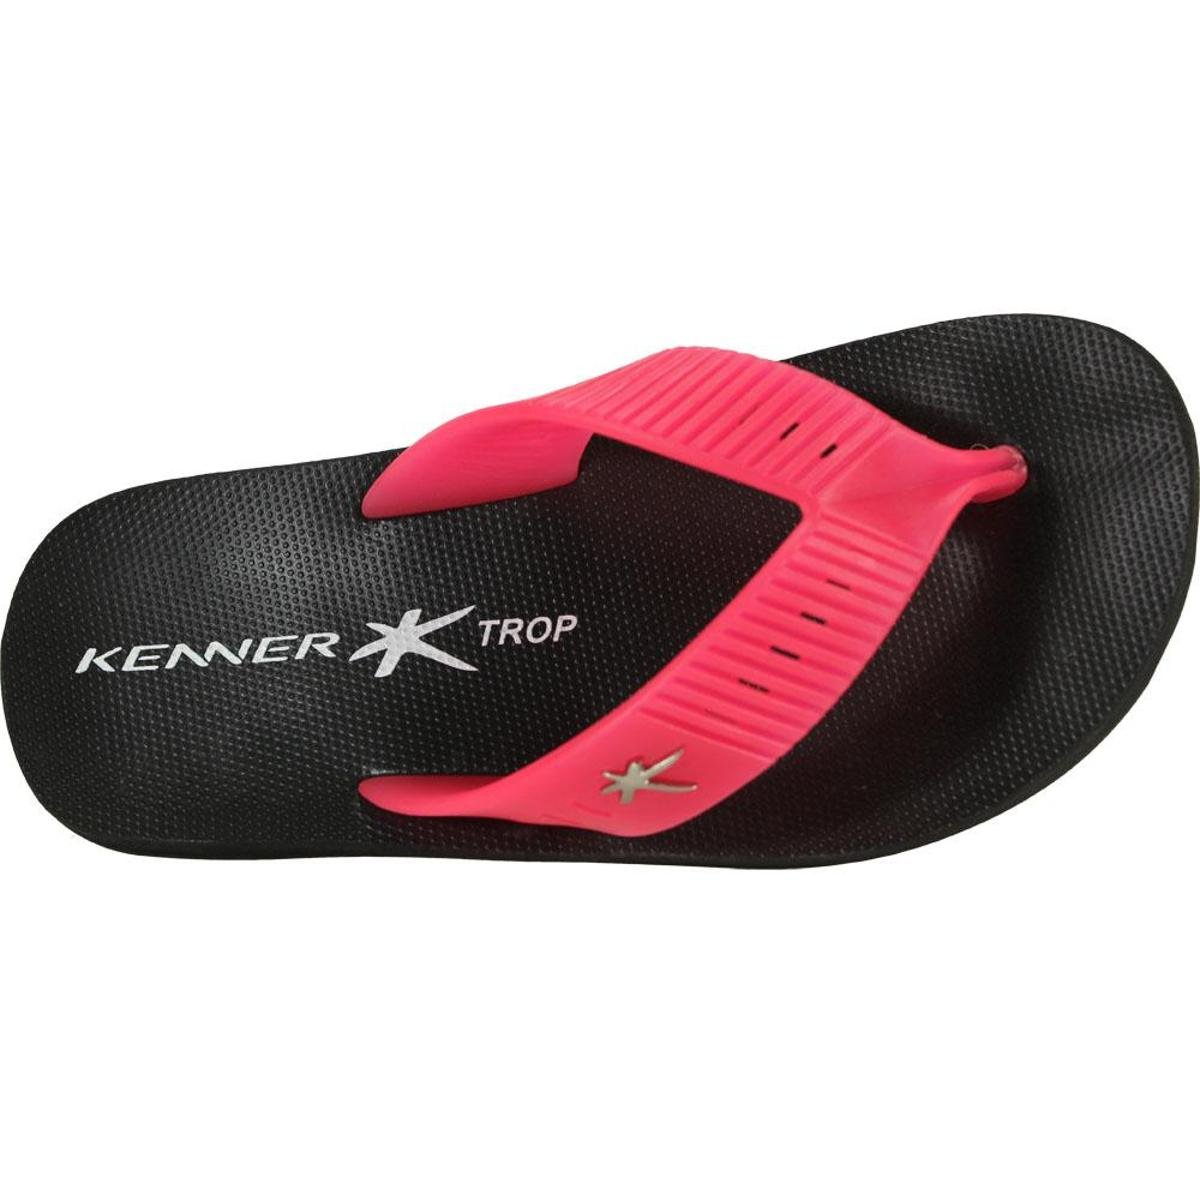 Chinelo Preto e Kmy Trop Kenner Kenner Trop Chinelo Pink 4wP5Yq